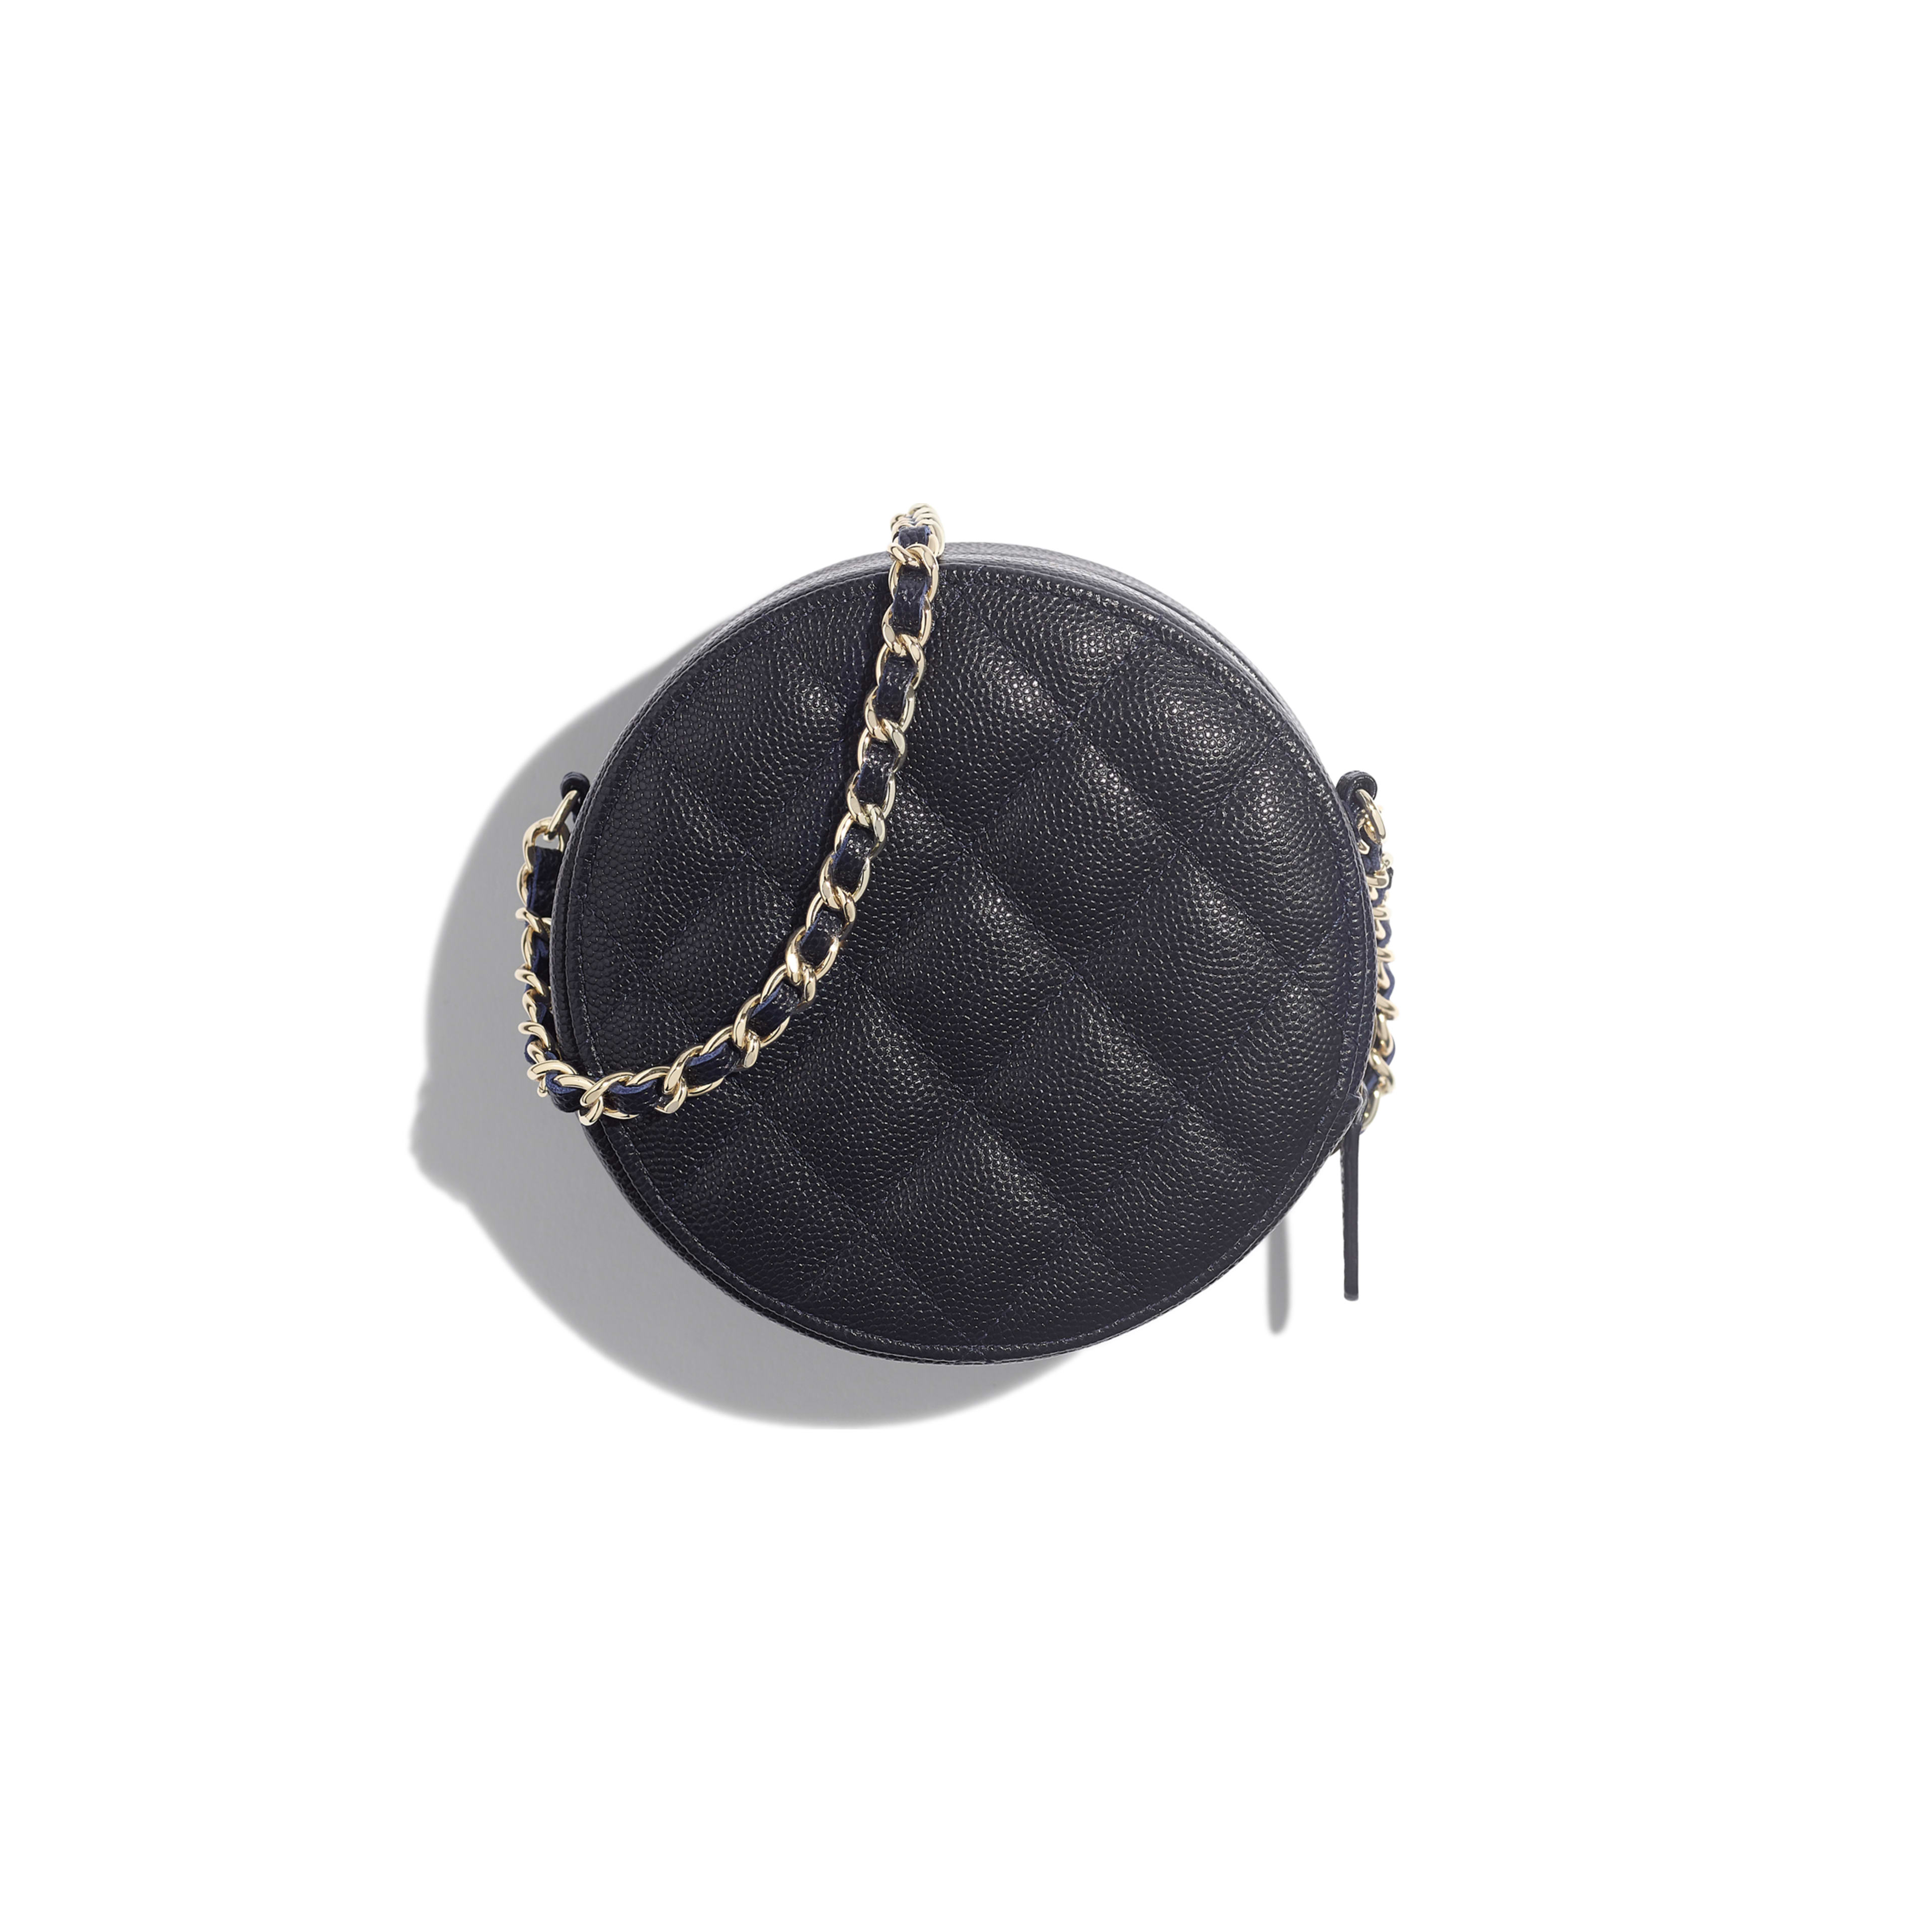 Classic Clutch With Chain - Navy Blue - Grained Calfskin & Gold-Tone Metal - Alternative view - see full sized version